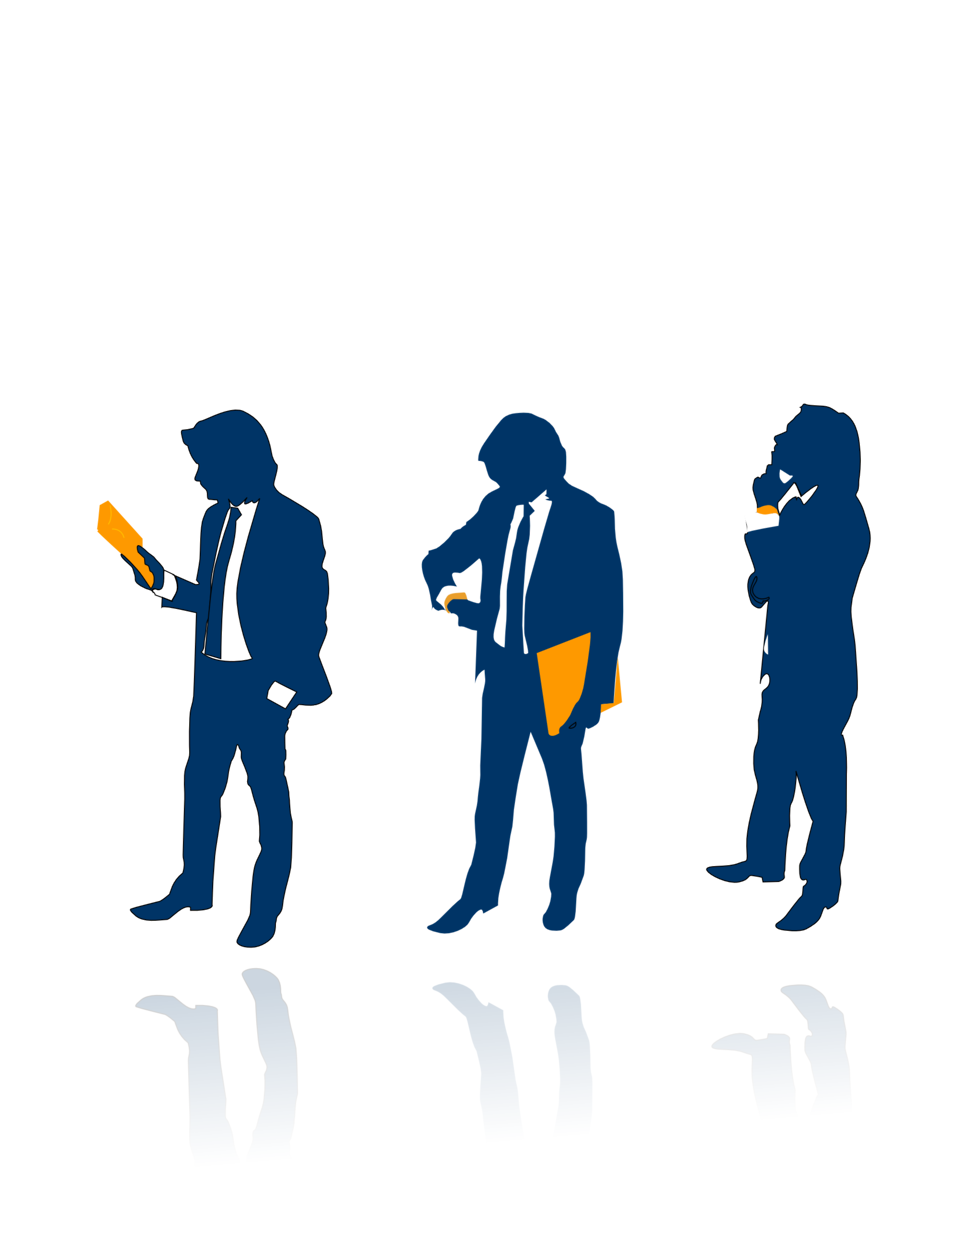 Illustration of businessmen silhouettes